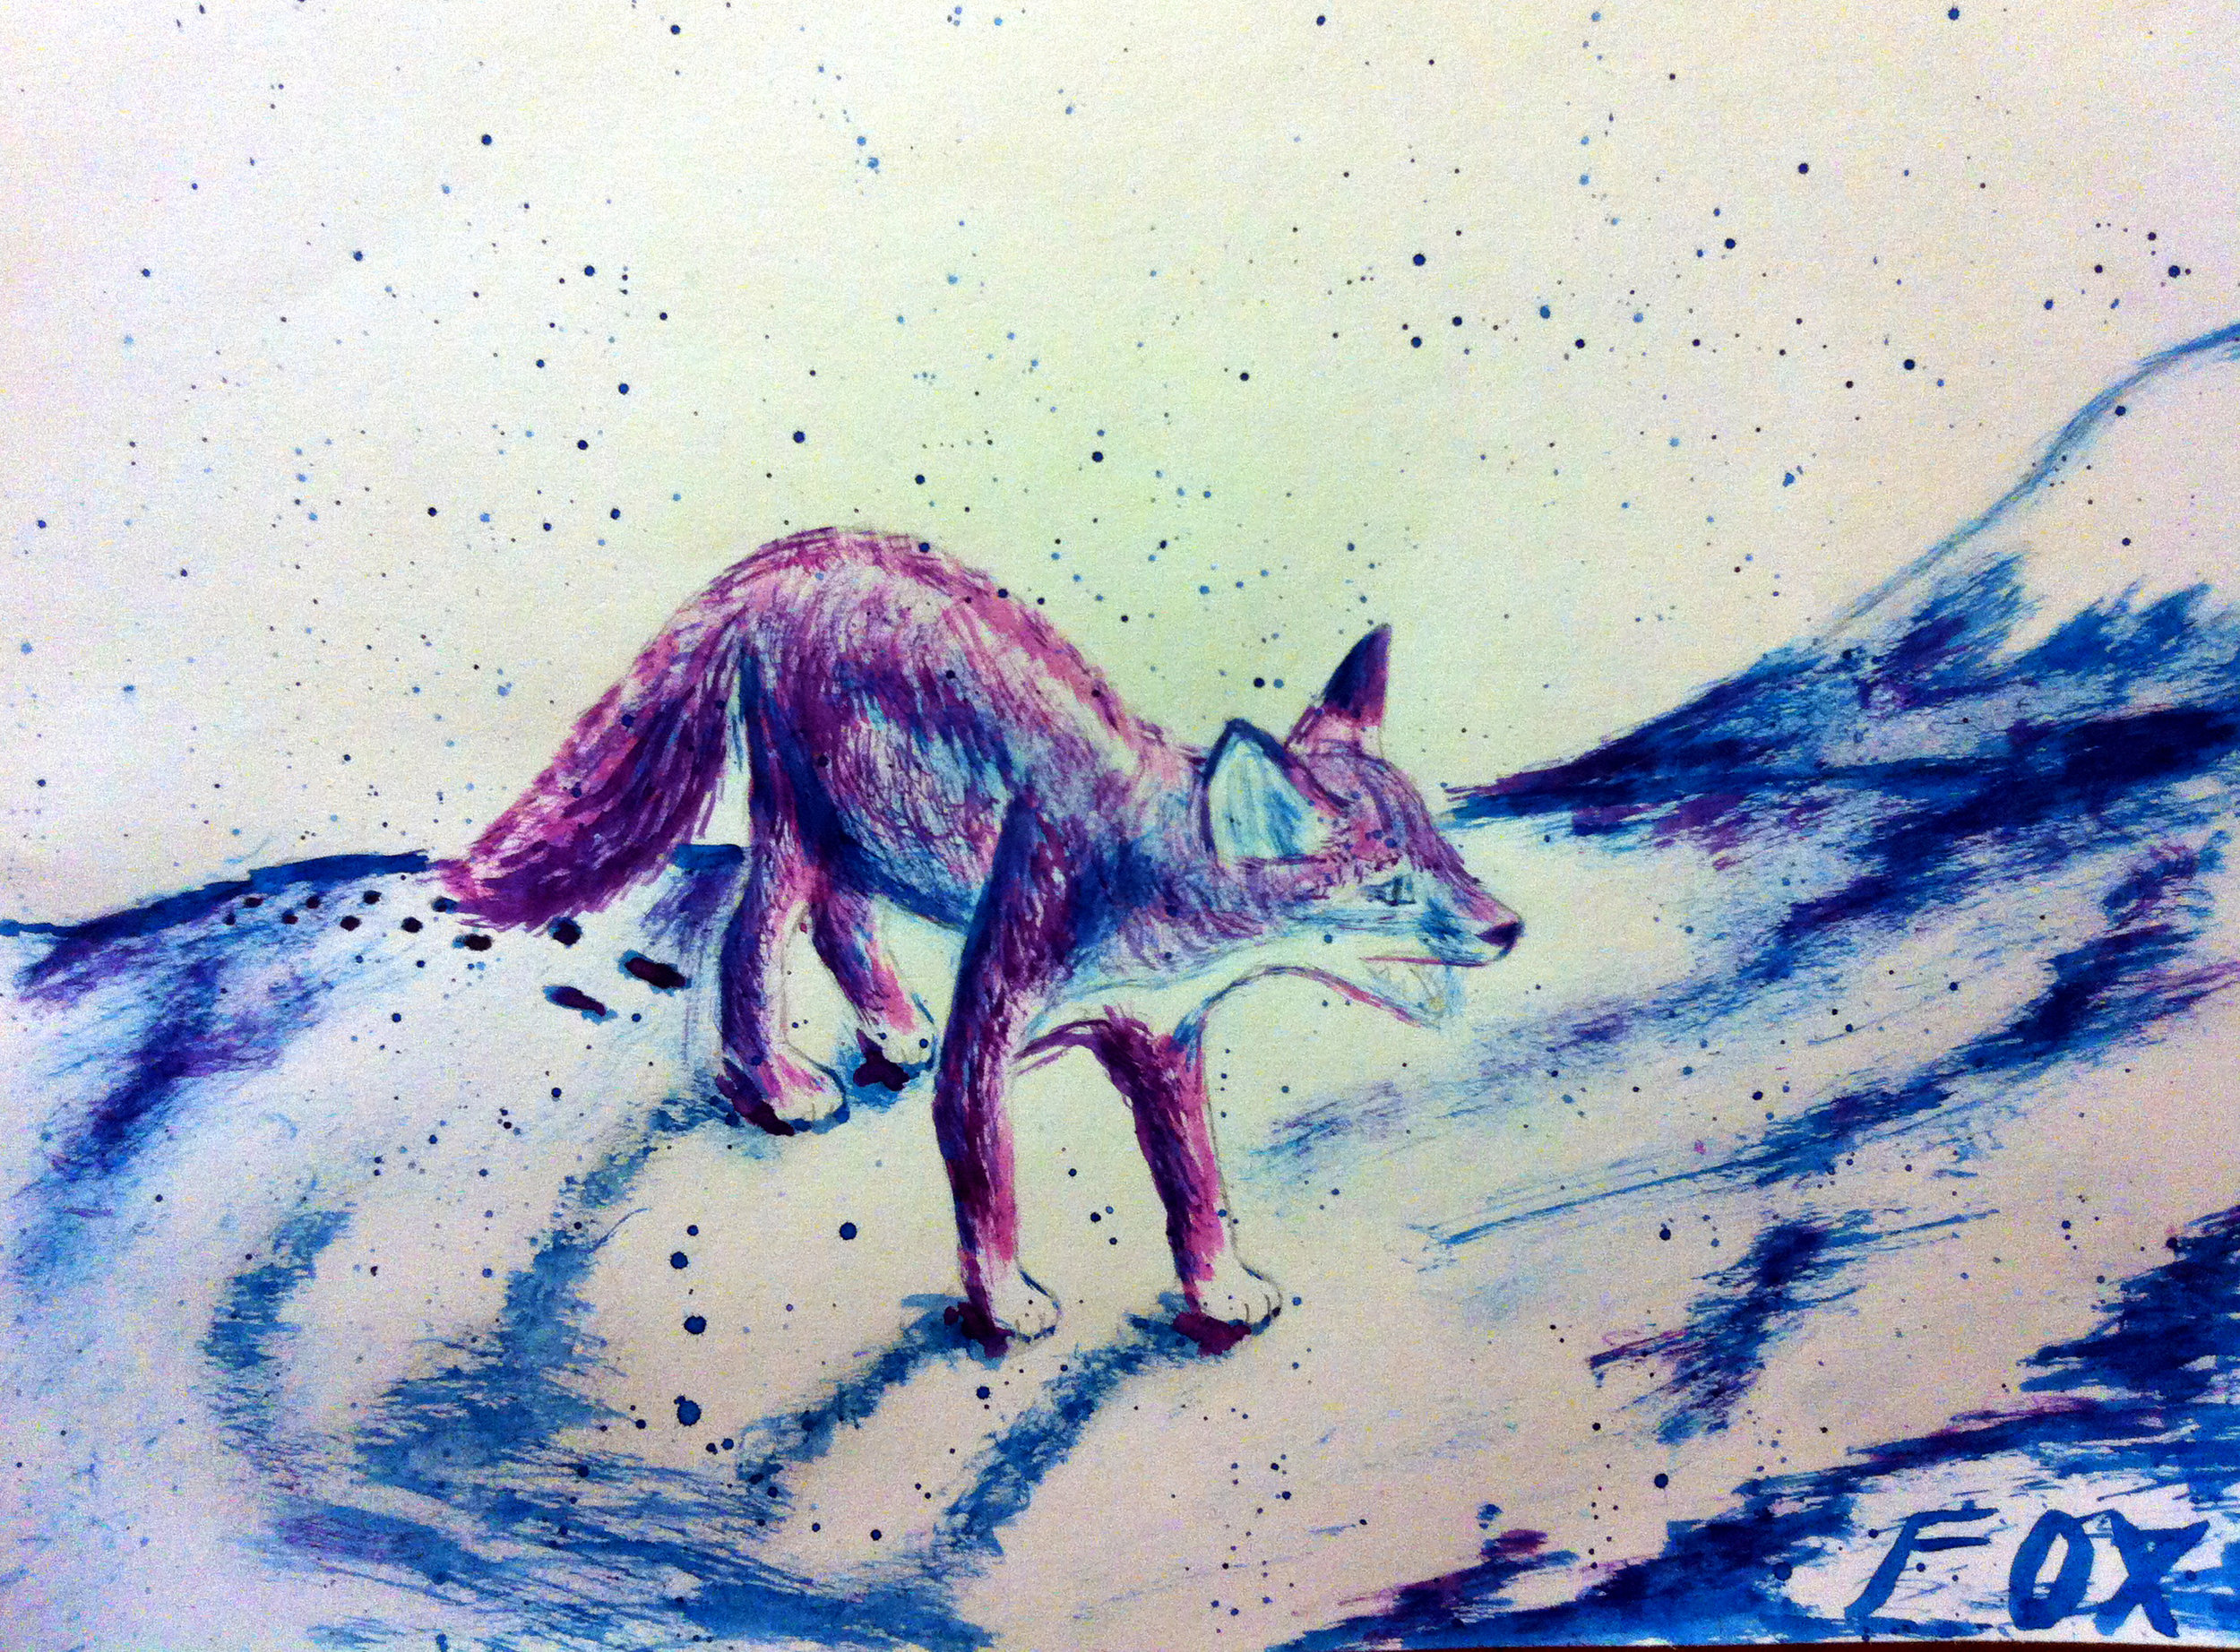 Young Fox In Snow - This little ice fox was an idea to set a mood using only two colors: blue and red.Pencil with only red and blue watercolor.